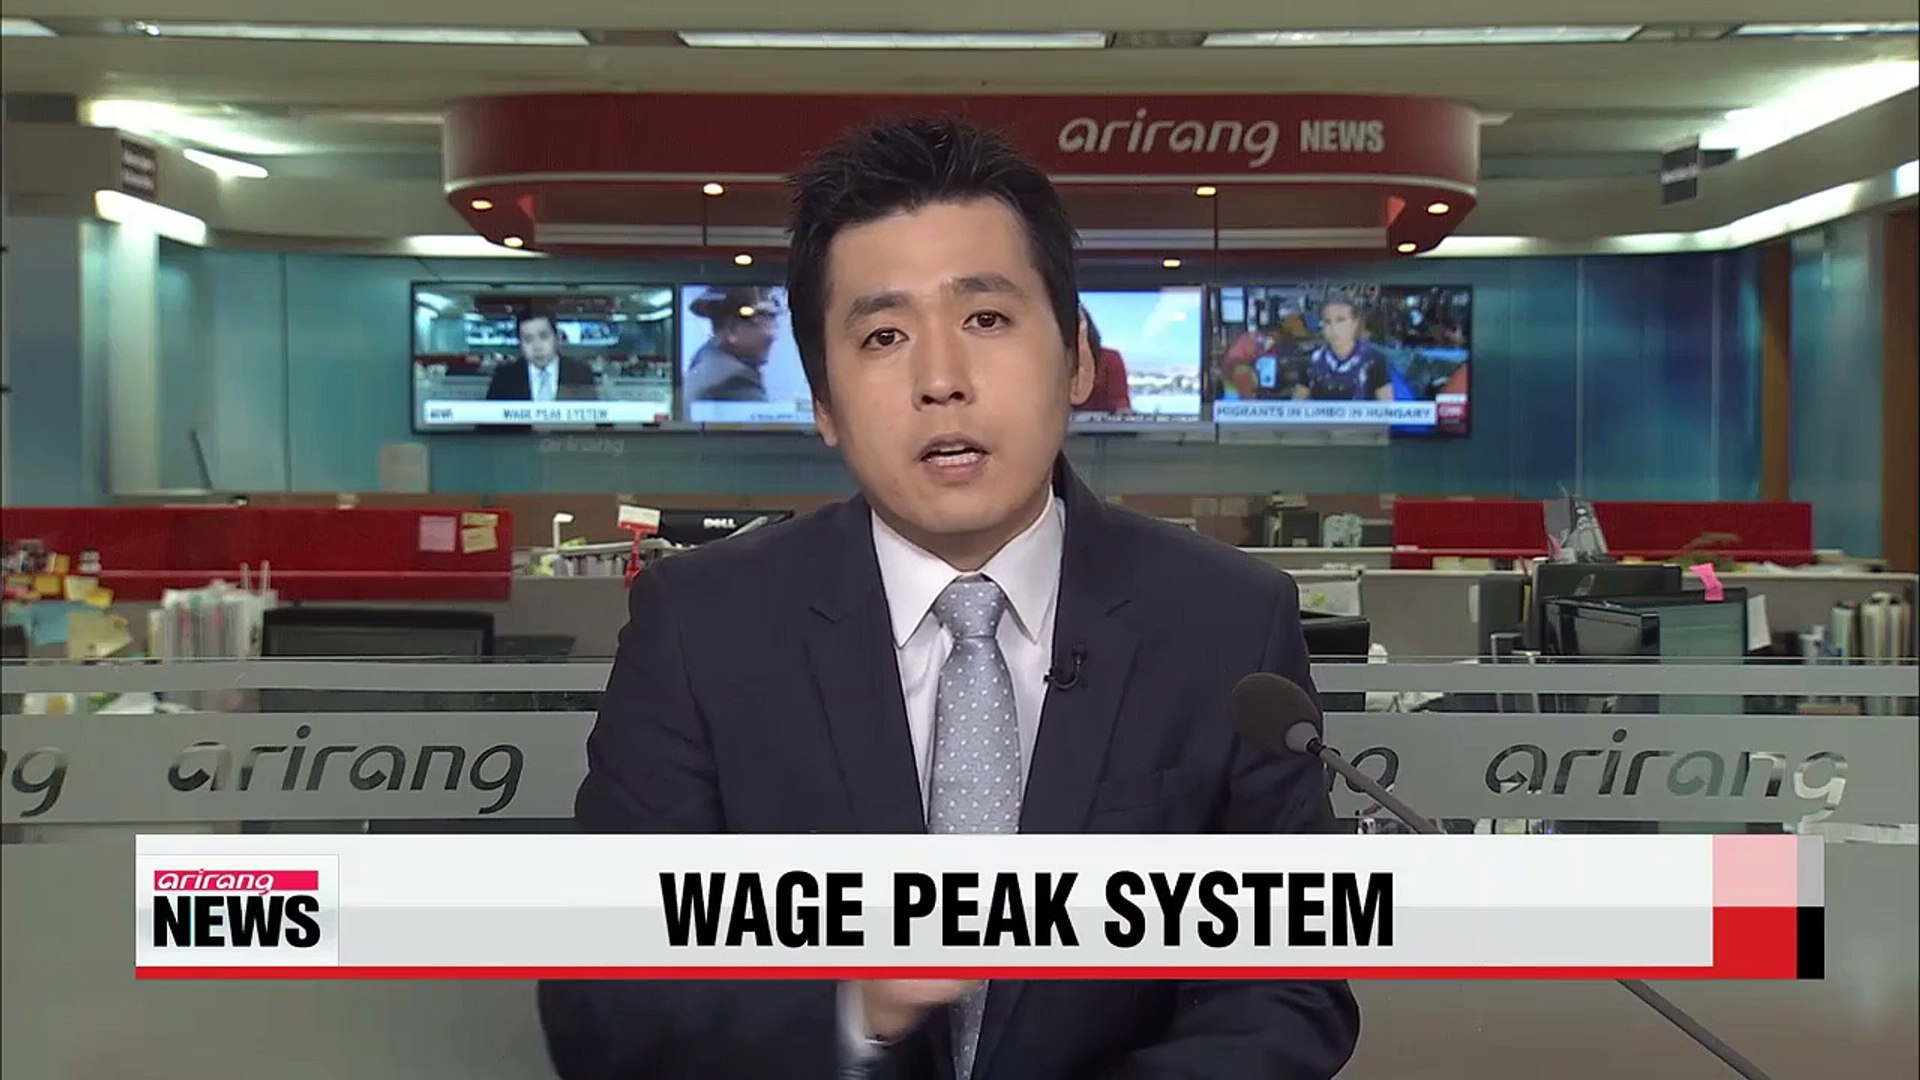 54 state-run corporations adopt wage peak system in August